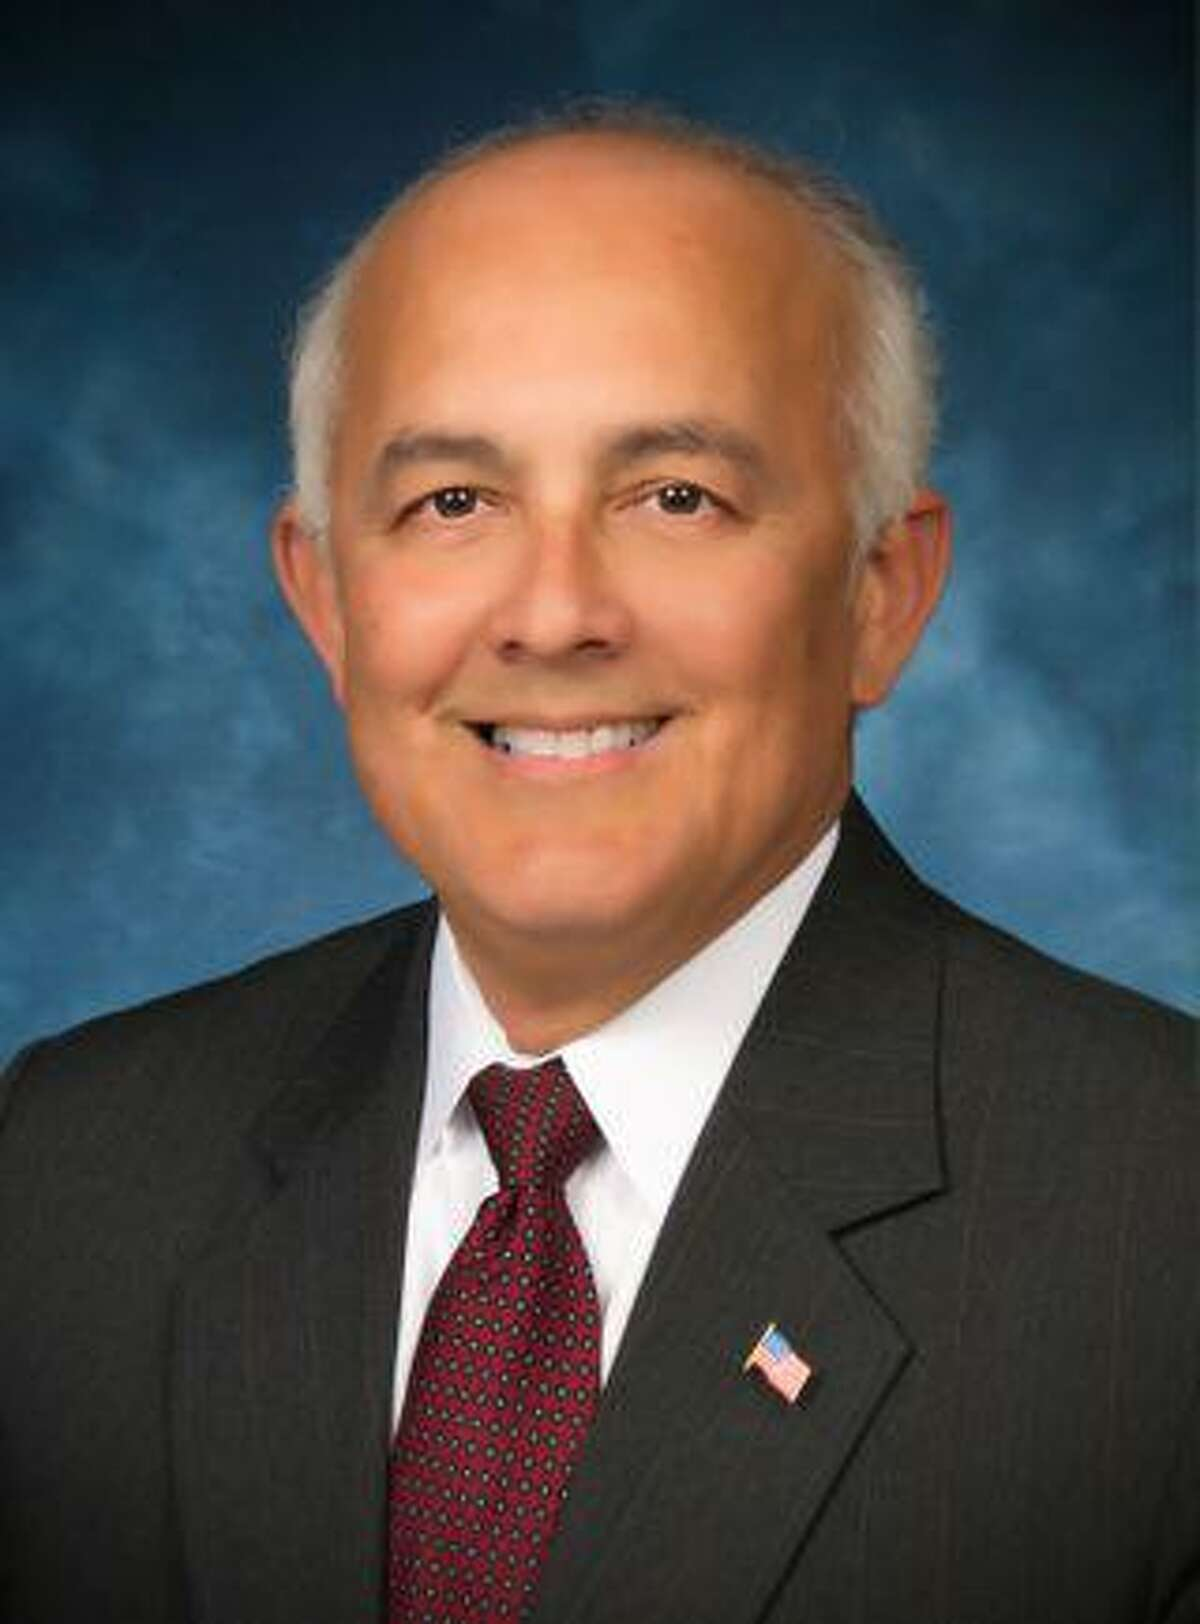 Long-time federal and state law enforcement official John Escoto is seekign a seat on the Shenandoh city council in the May 1 municipal elections. Escoto has lived in Shenandoah 10 years and is currently a member of the city's planning and zoning commission.